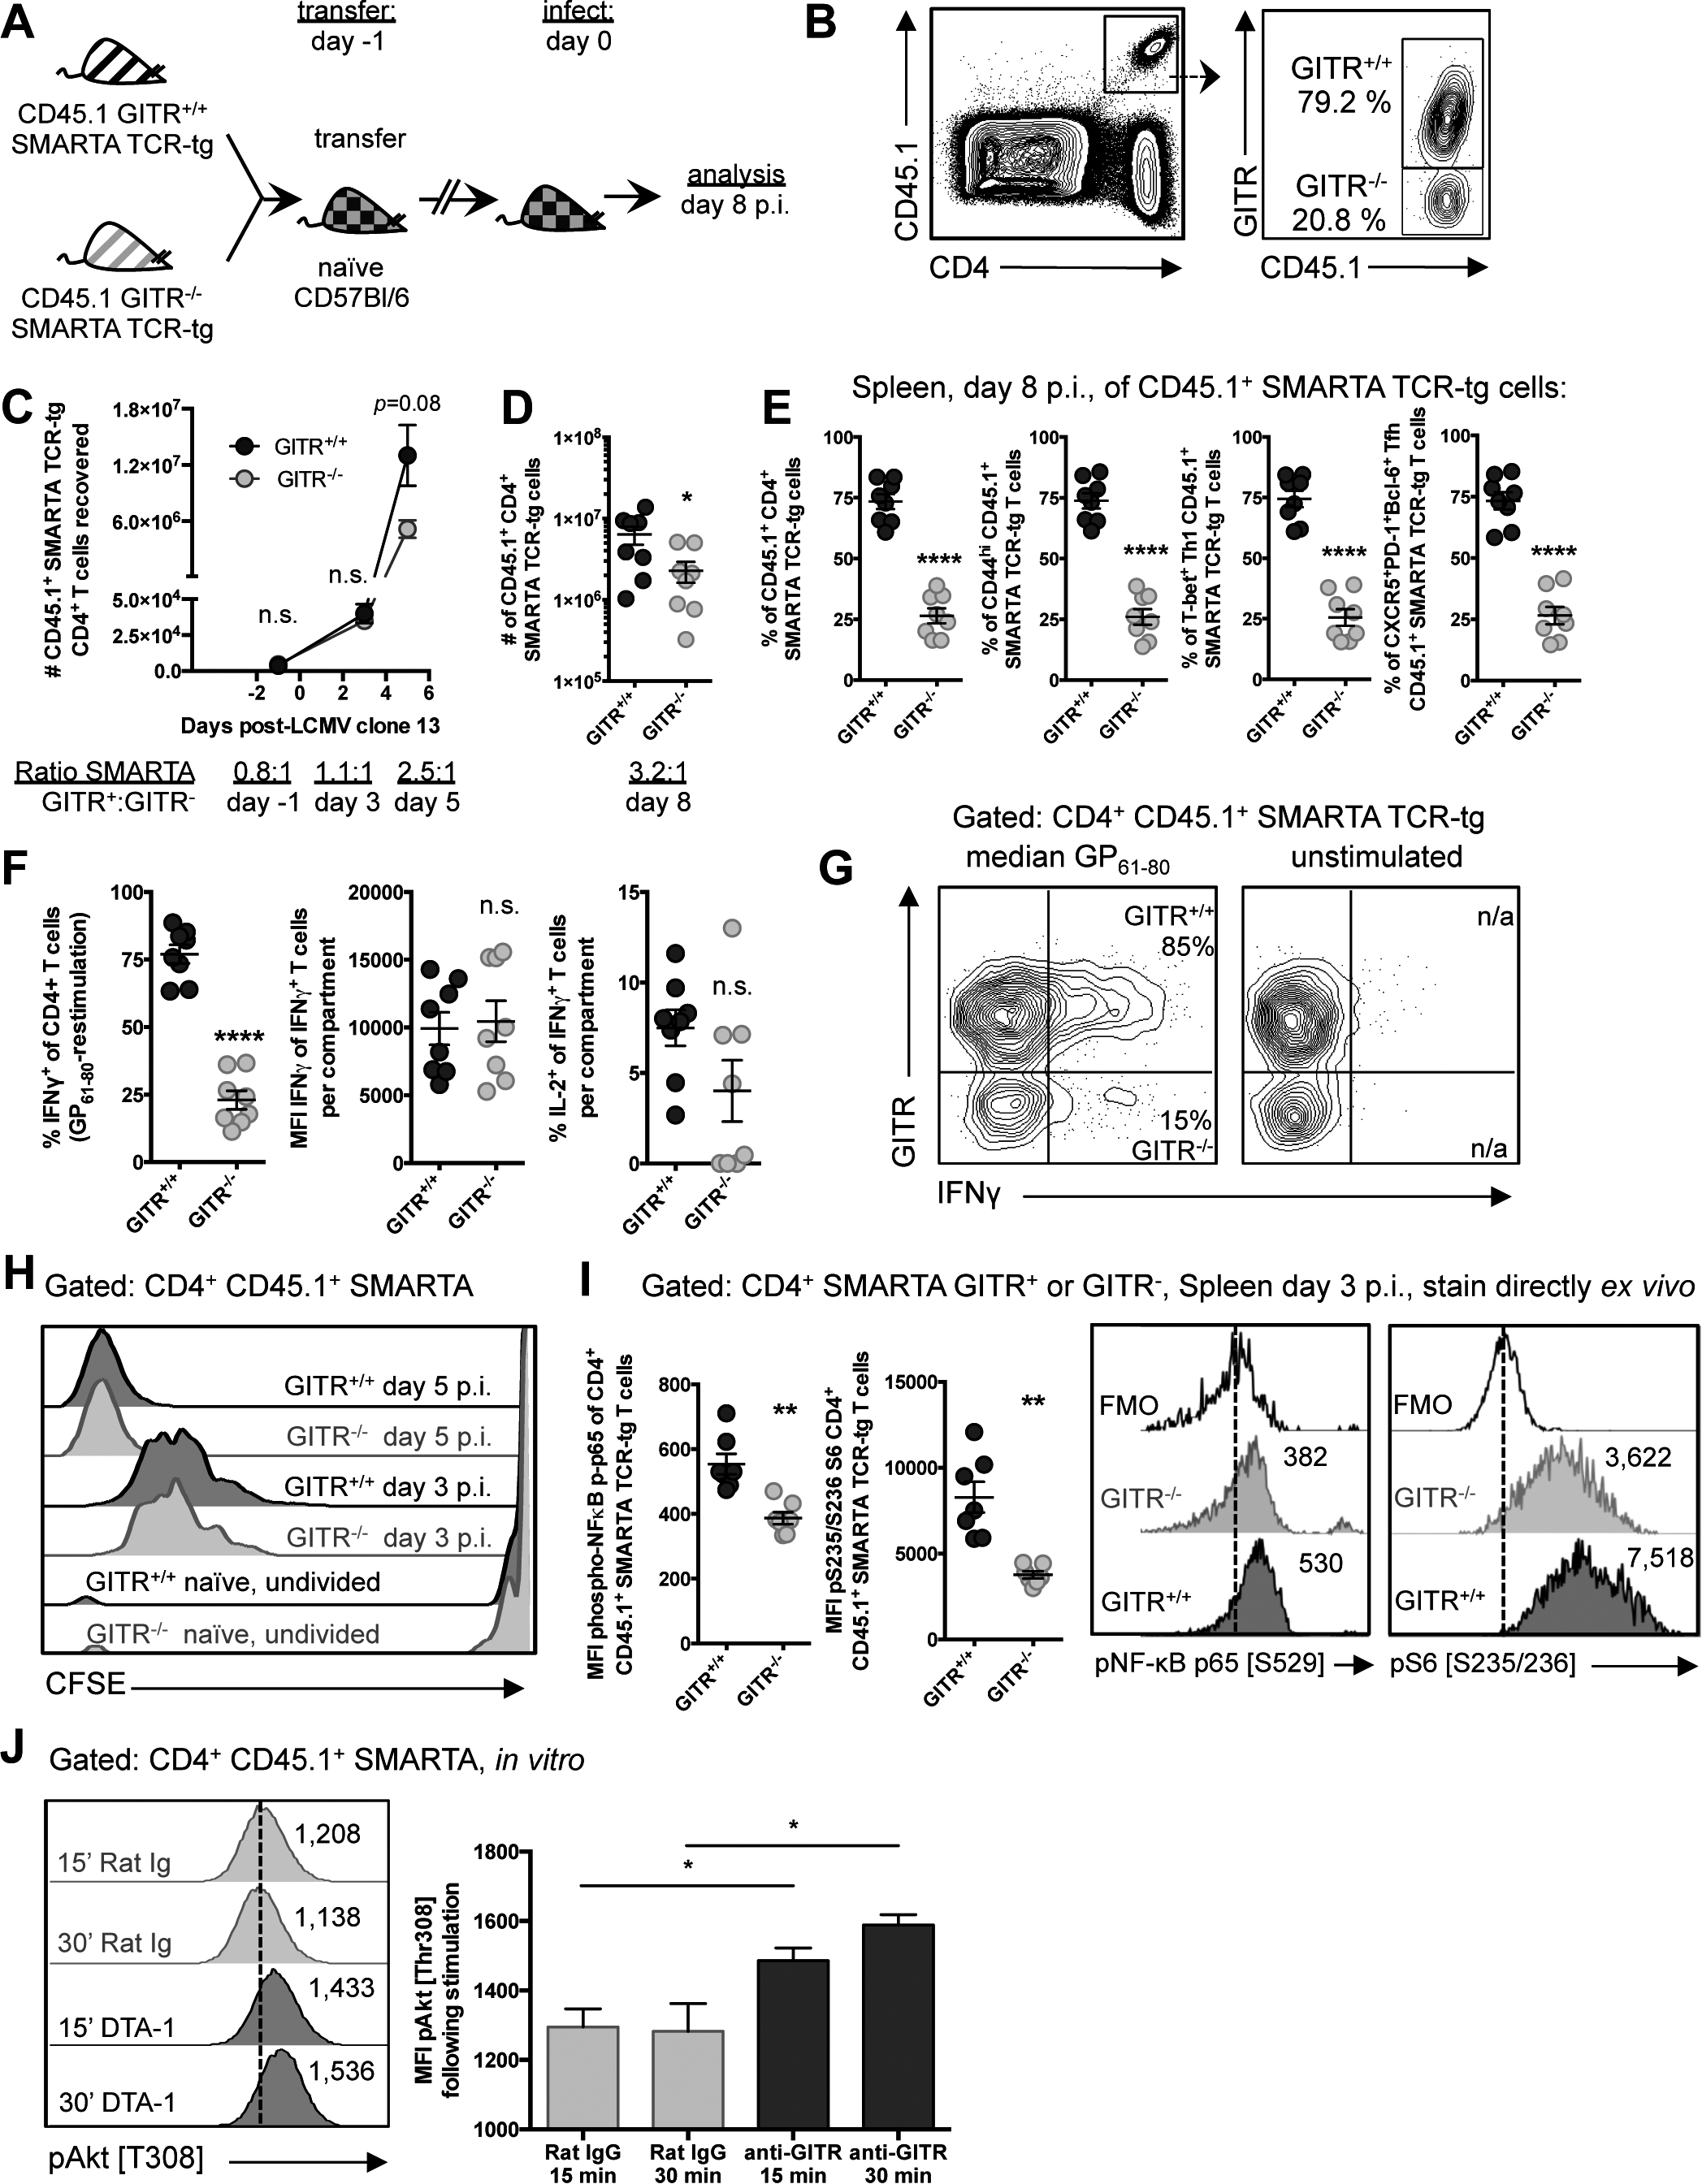 GITR co-stimulation activates classical NF-κB and the Akt-mTORC1 signaling axis to regulate CD4 T cell accumulation post-priming.